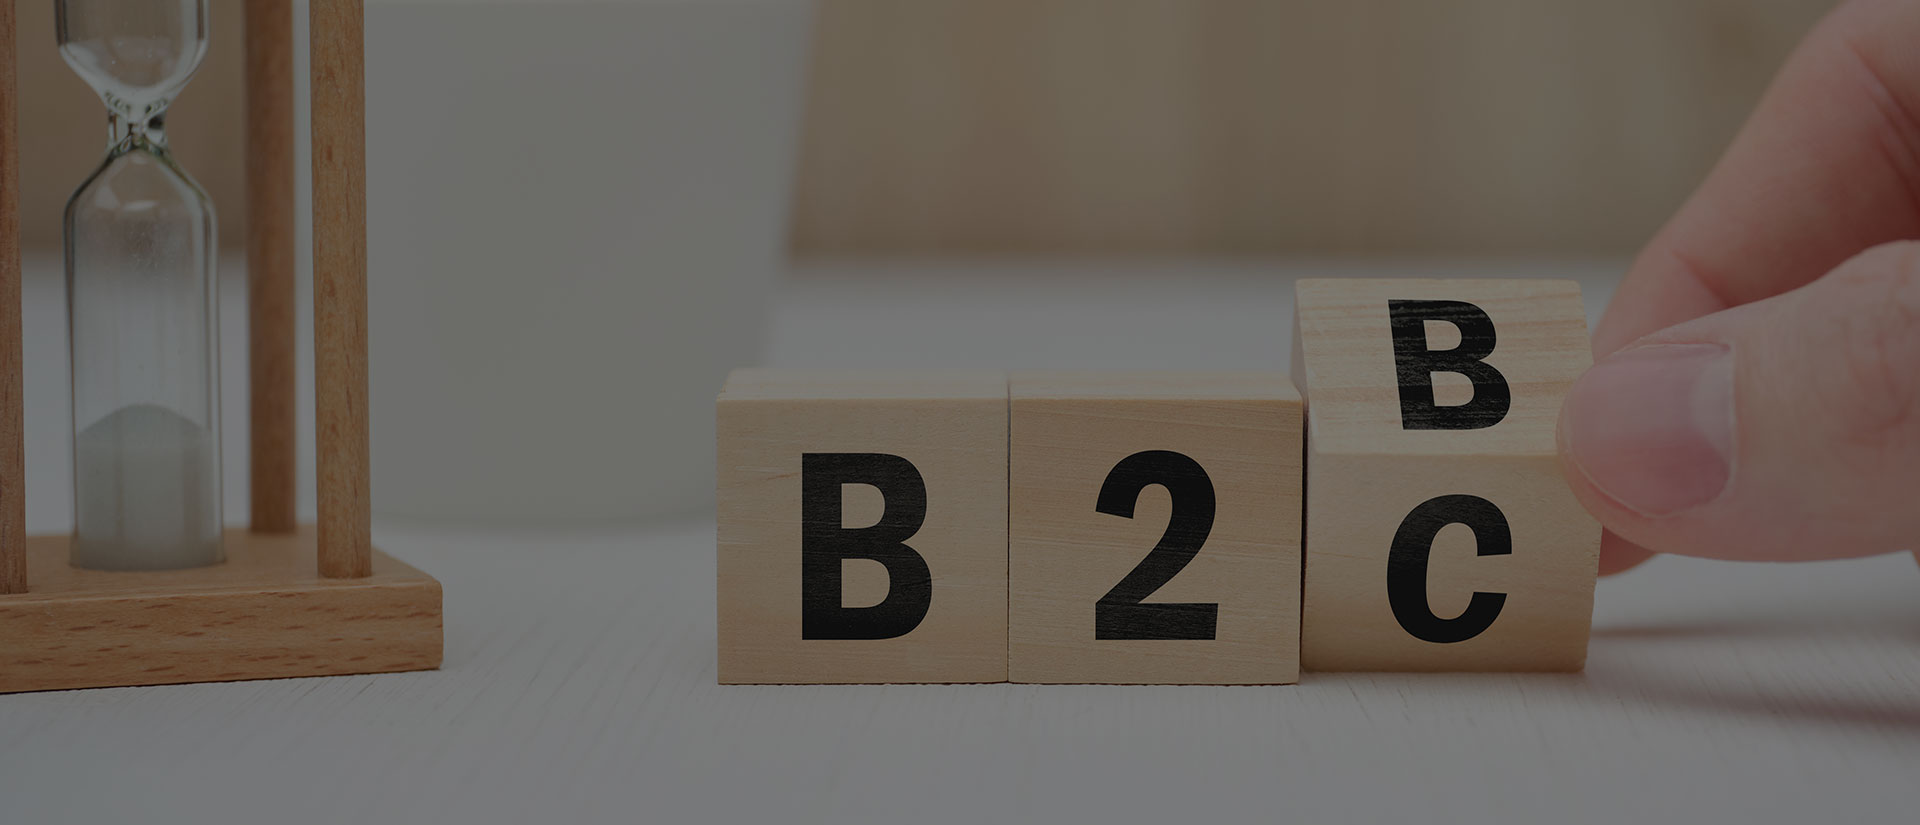 E-commerce B2B E B2C: Quali sono le differenze?